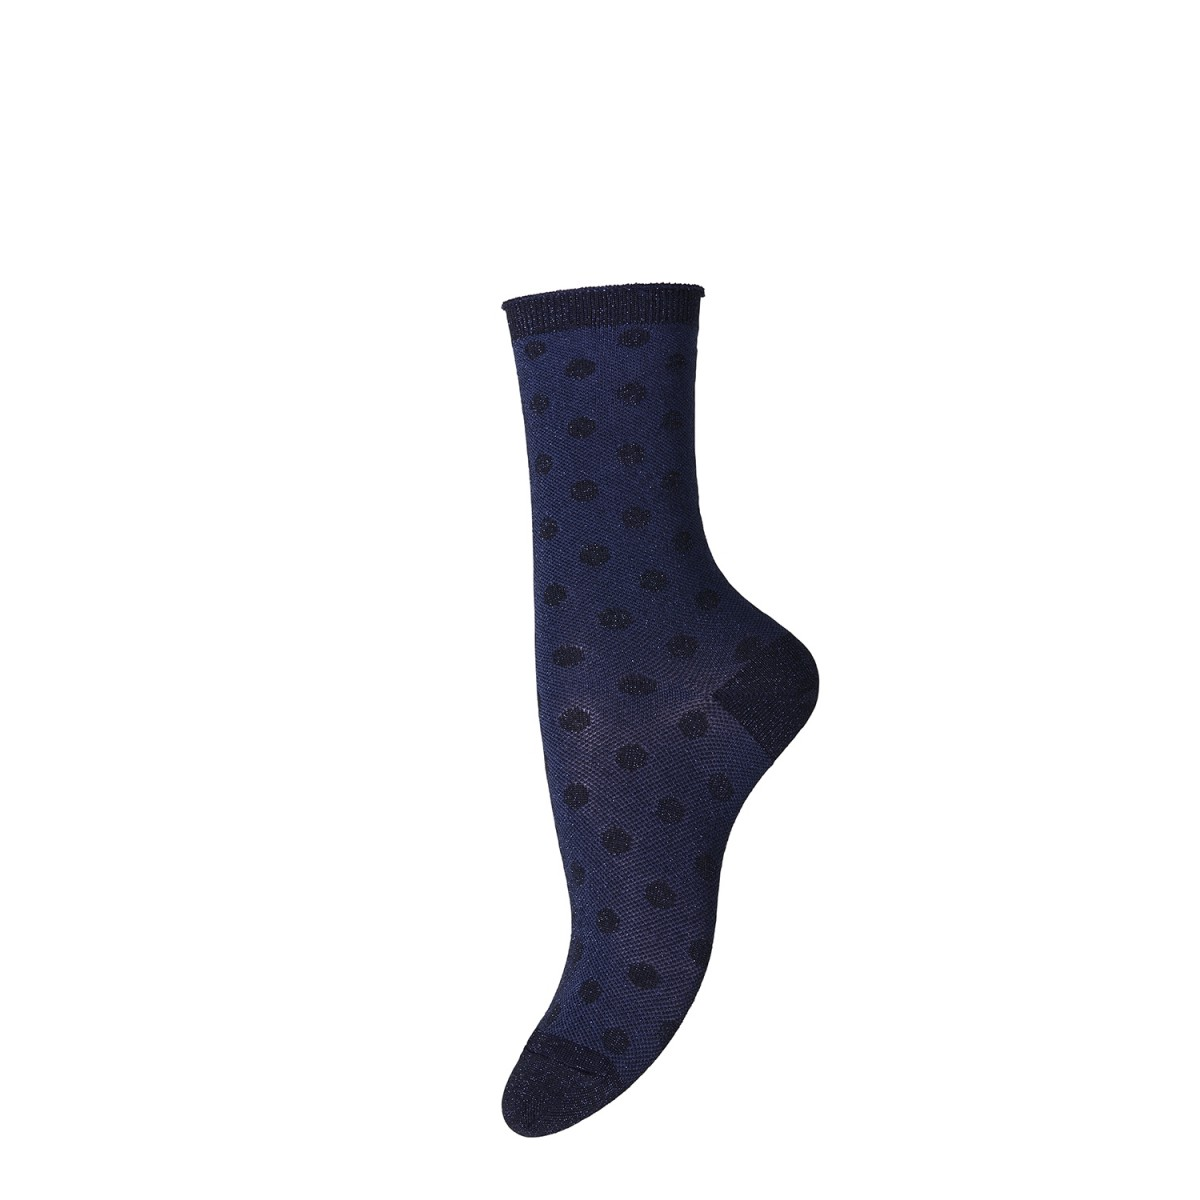 MP 79560 712 Ankle Daiva Navy/Black-31